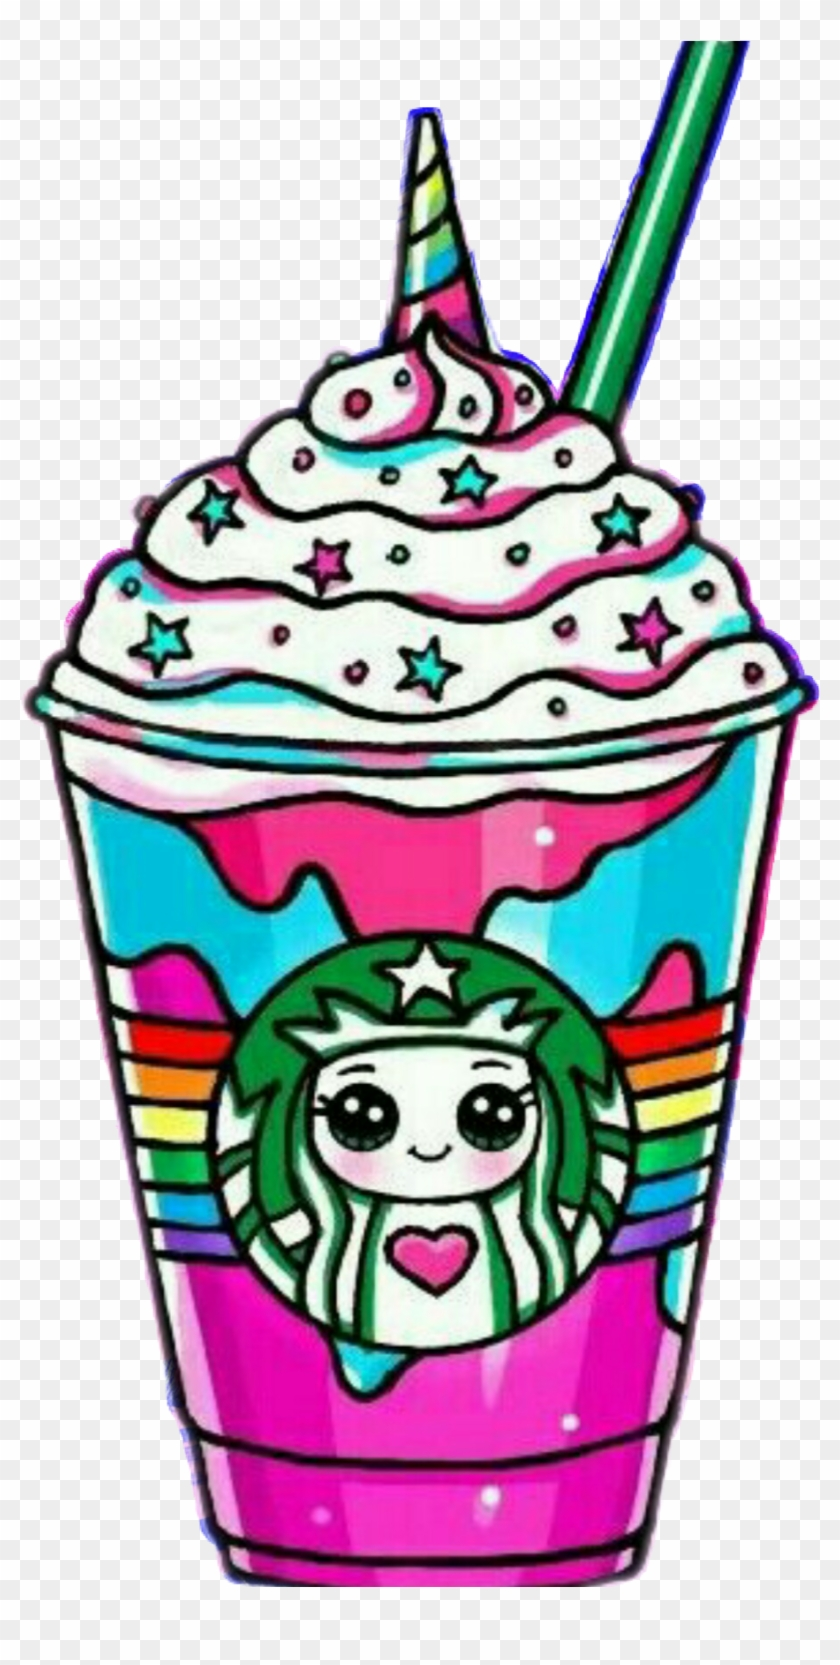 Starbucks Frappe Unicornio Unicorns 😍 Arcoiris 🌈 Draw So